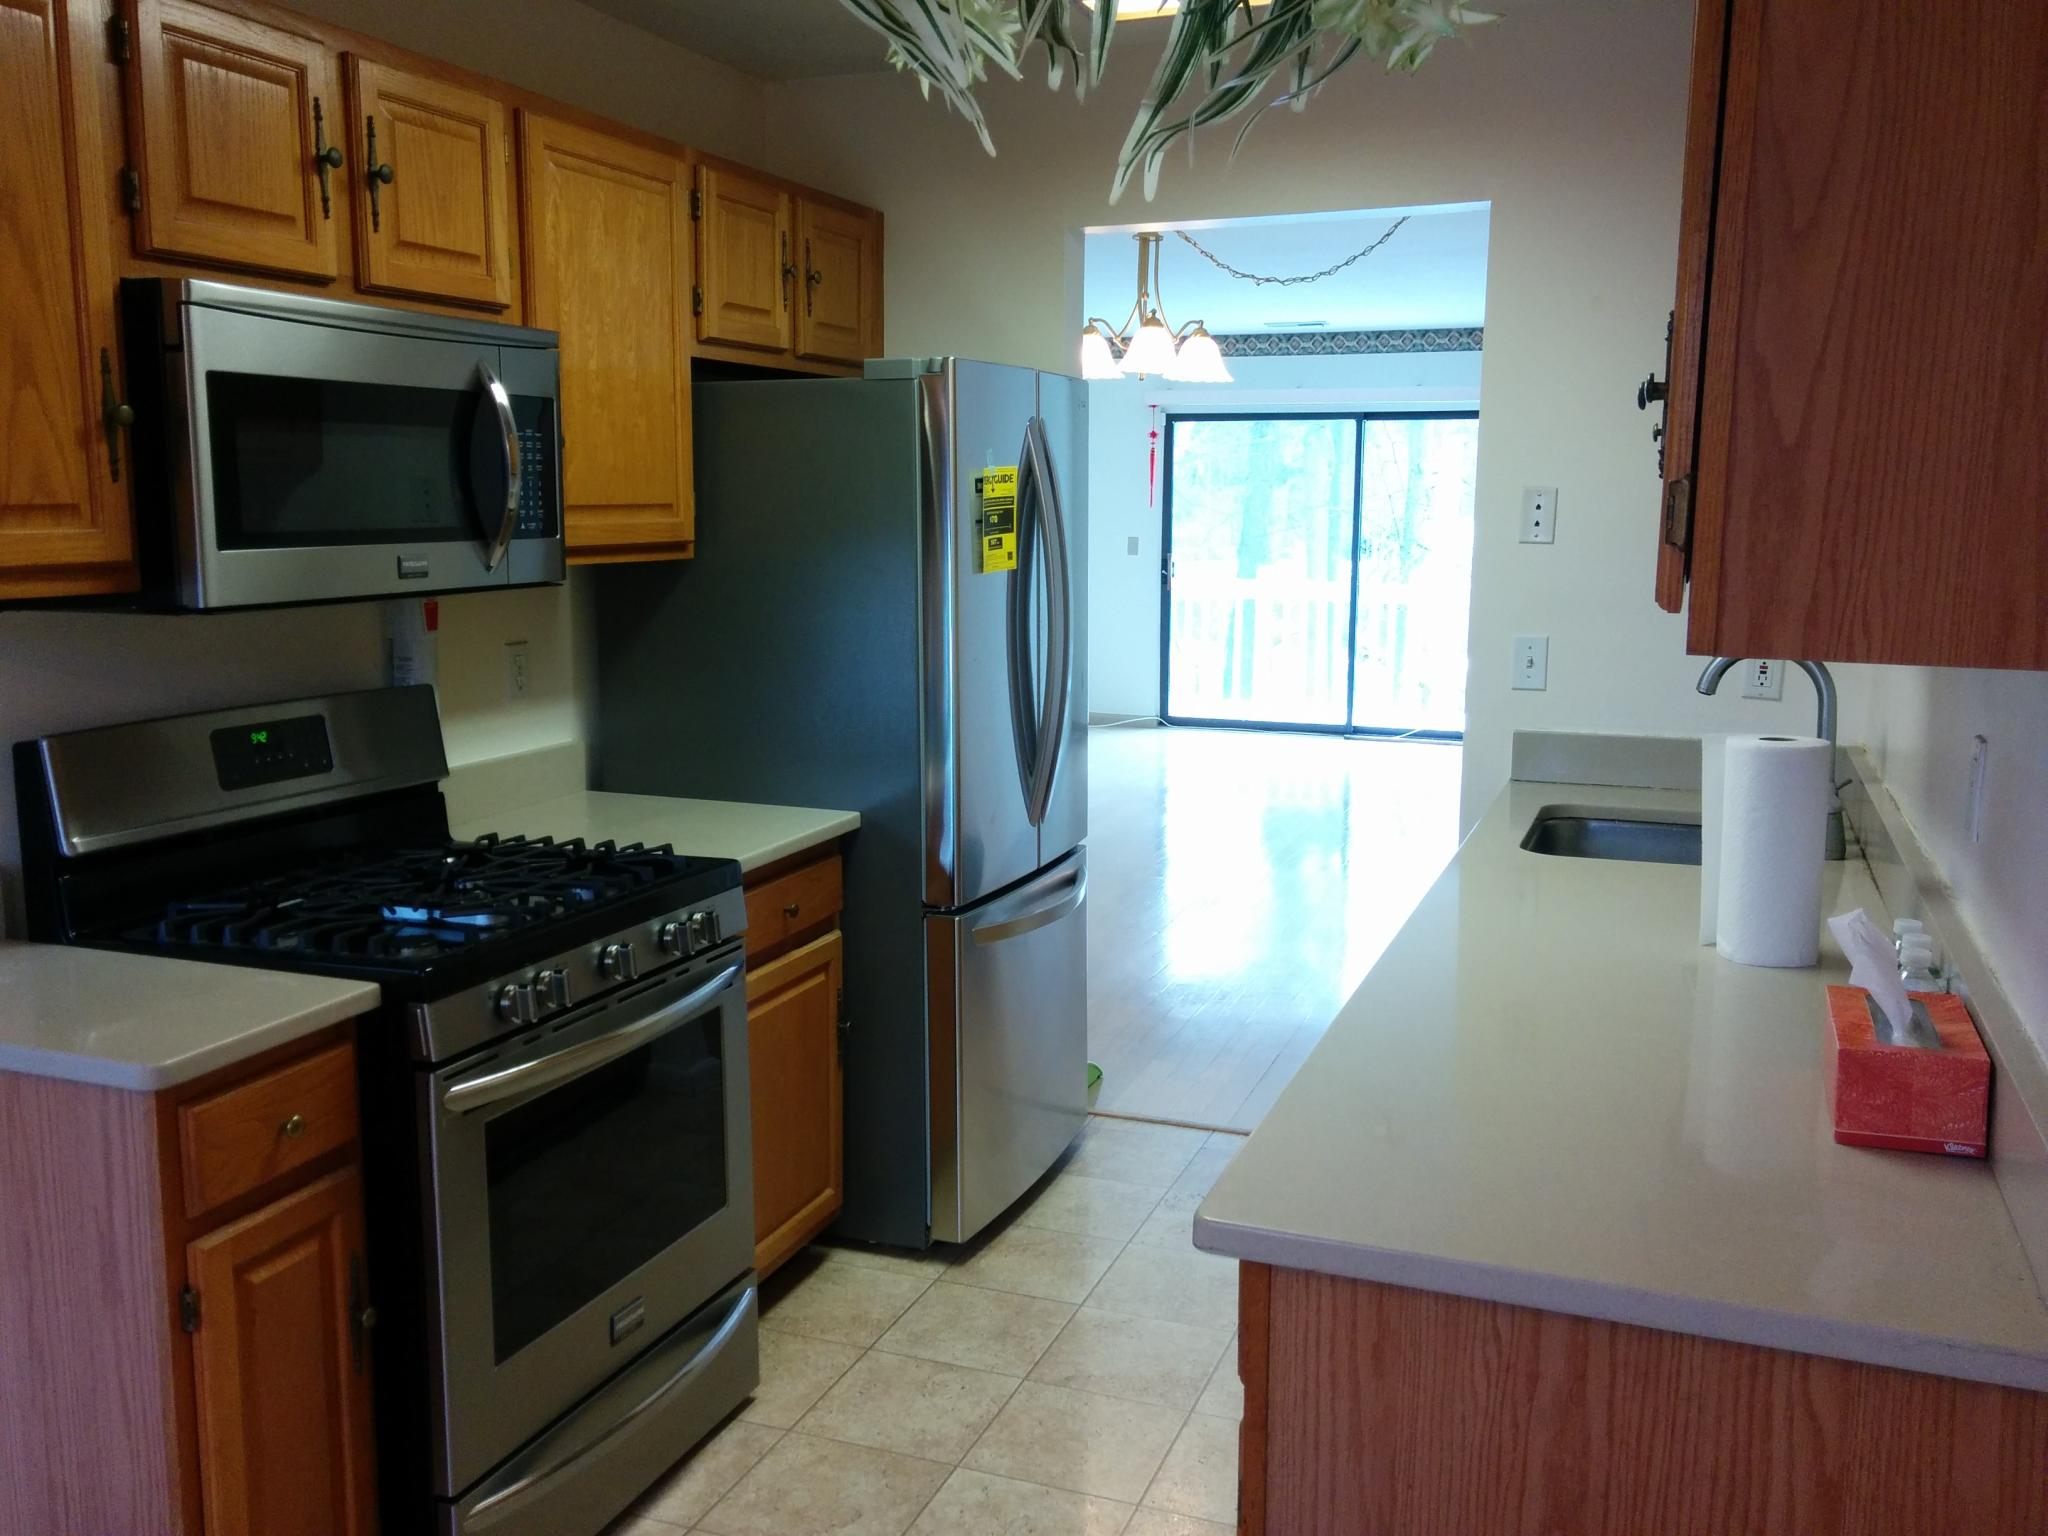 112 Water Front Vw, Mohegan Lake, NY 10547 For Rent   Trulia